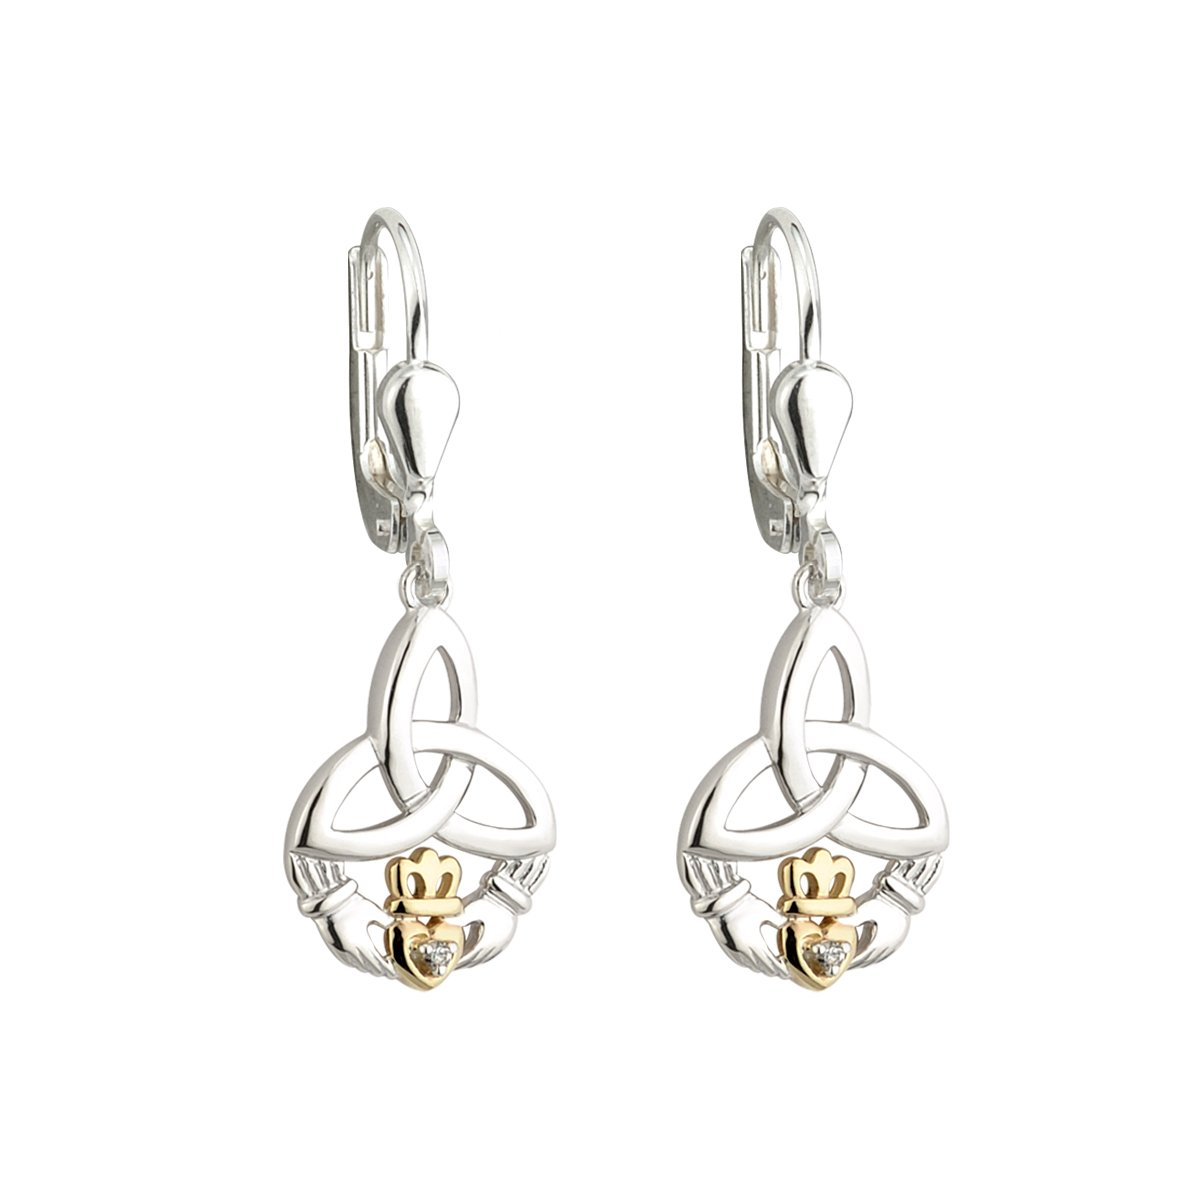 Irish Earrings | Diamond Sterling Silver and 10k Yellow Gold Drop Celtic Trinity Knot Claddagh Earrings